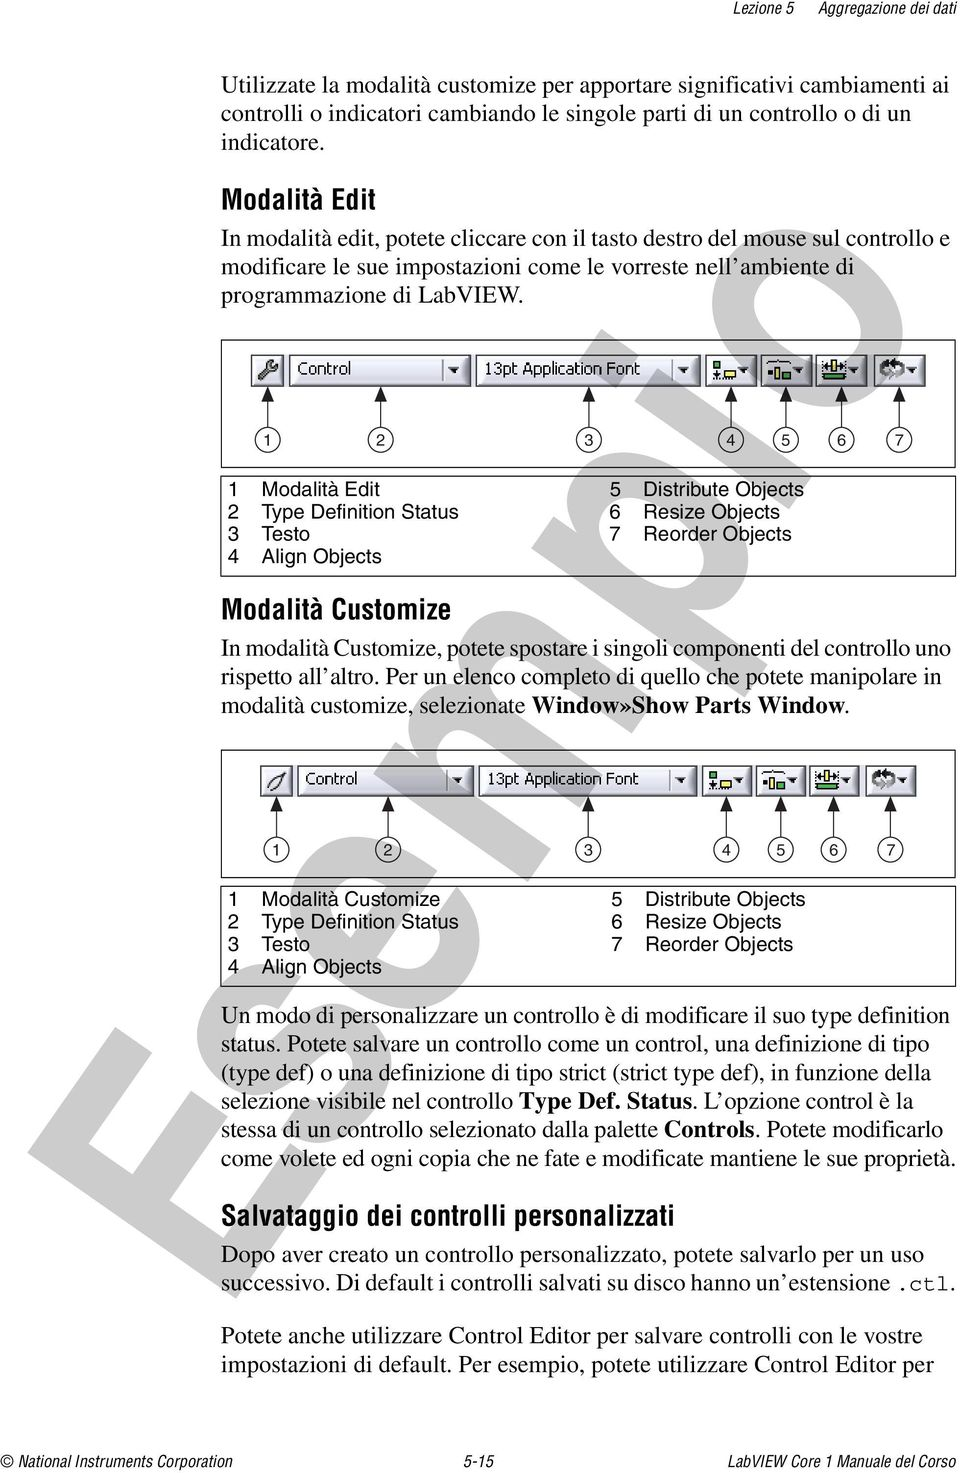 1 2 3 4 5 6 7 1 Modalità Edit 2 Type Definition Status 3 Testo 4 Align Objects 5 Distribute Objects 6 Resize Objects 7 Reorder Objects Modalità Customize In modalità Customize, potete spostare i